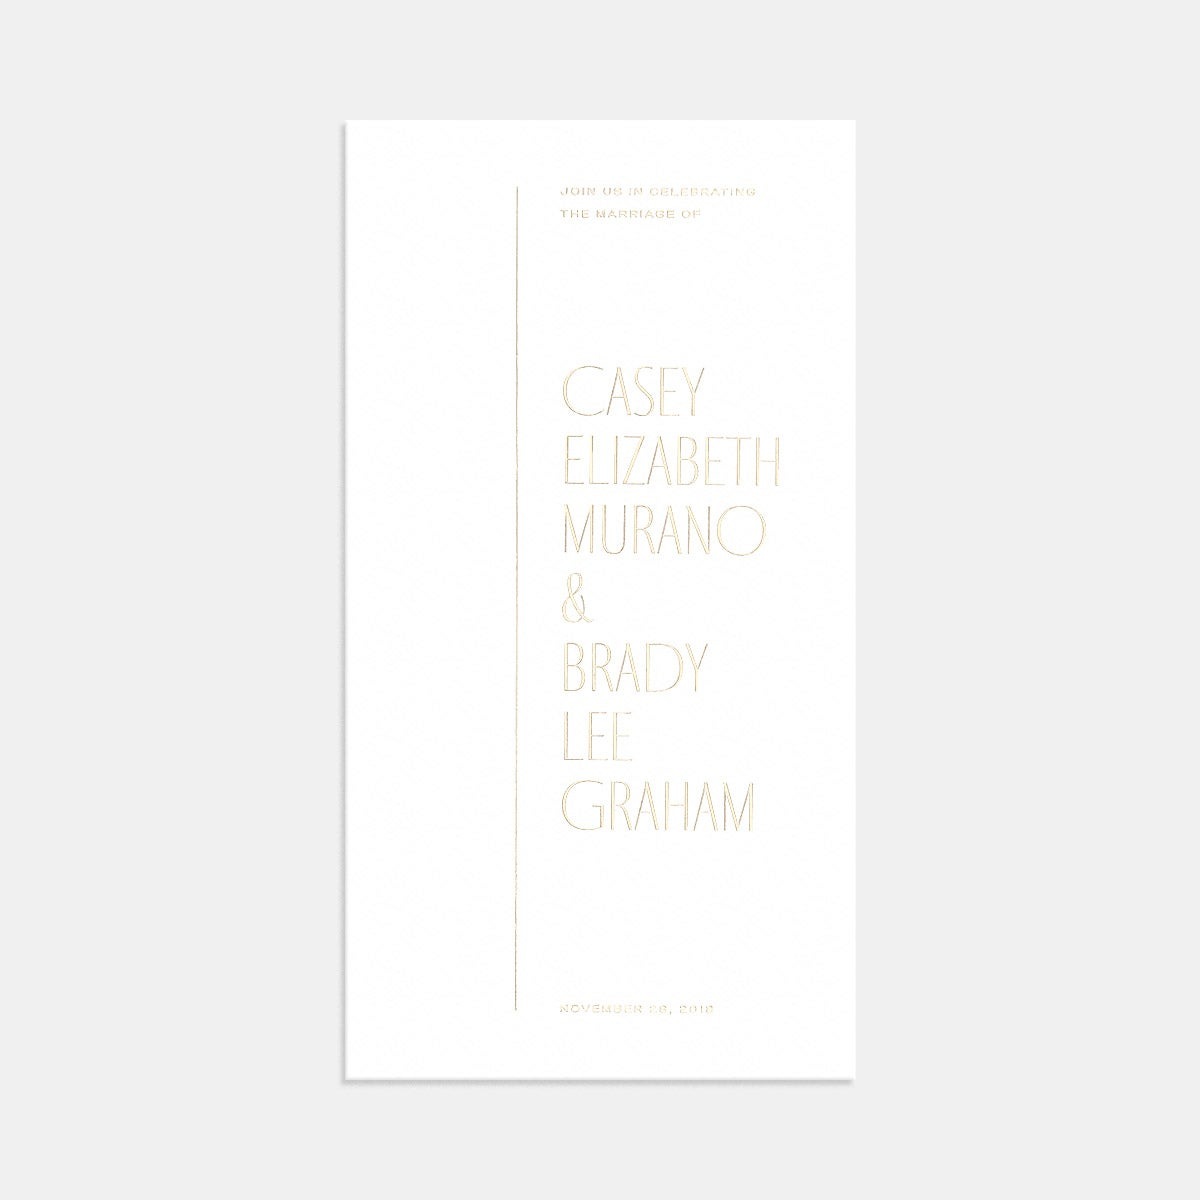 Image for Letterpress Minimal Wedding Invitation